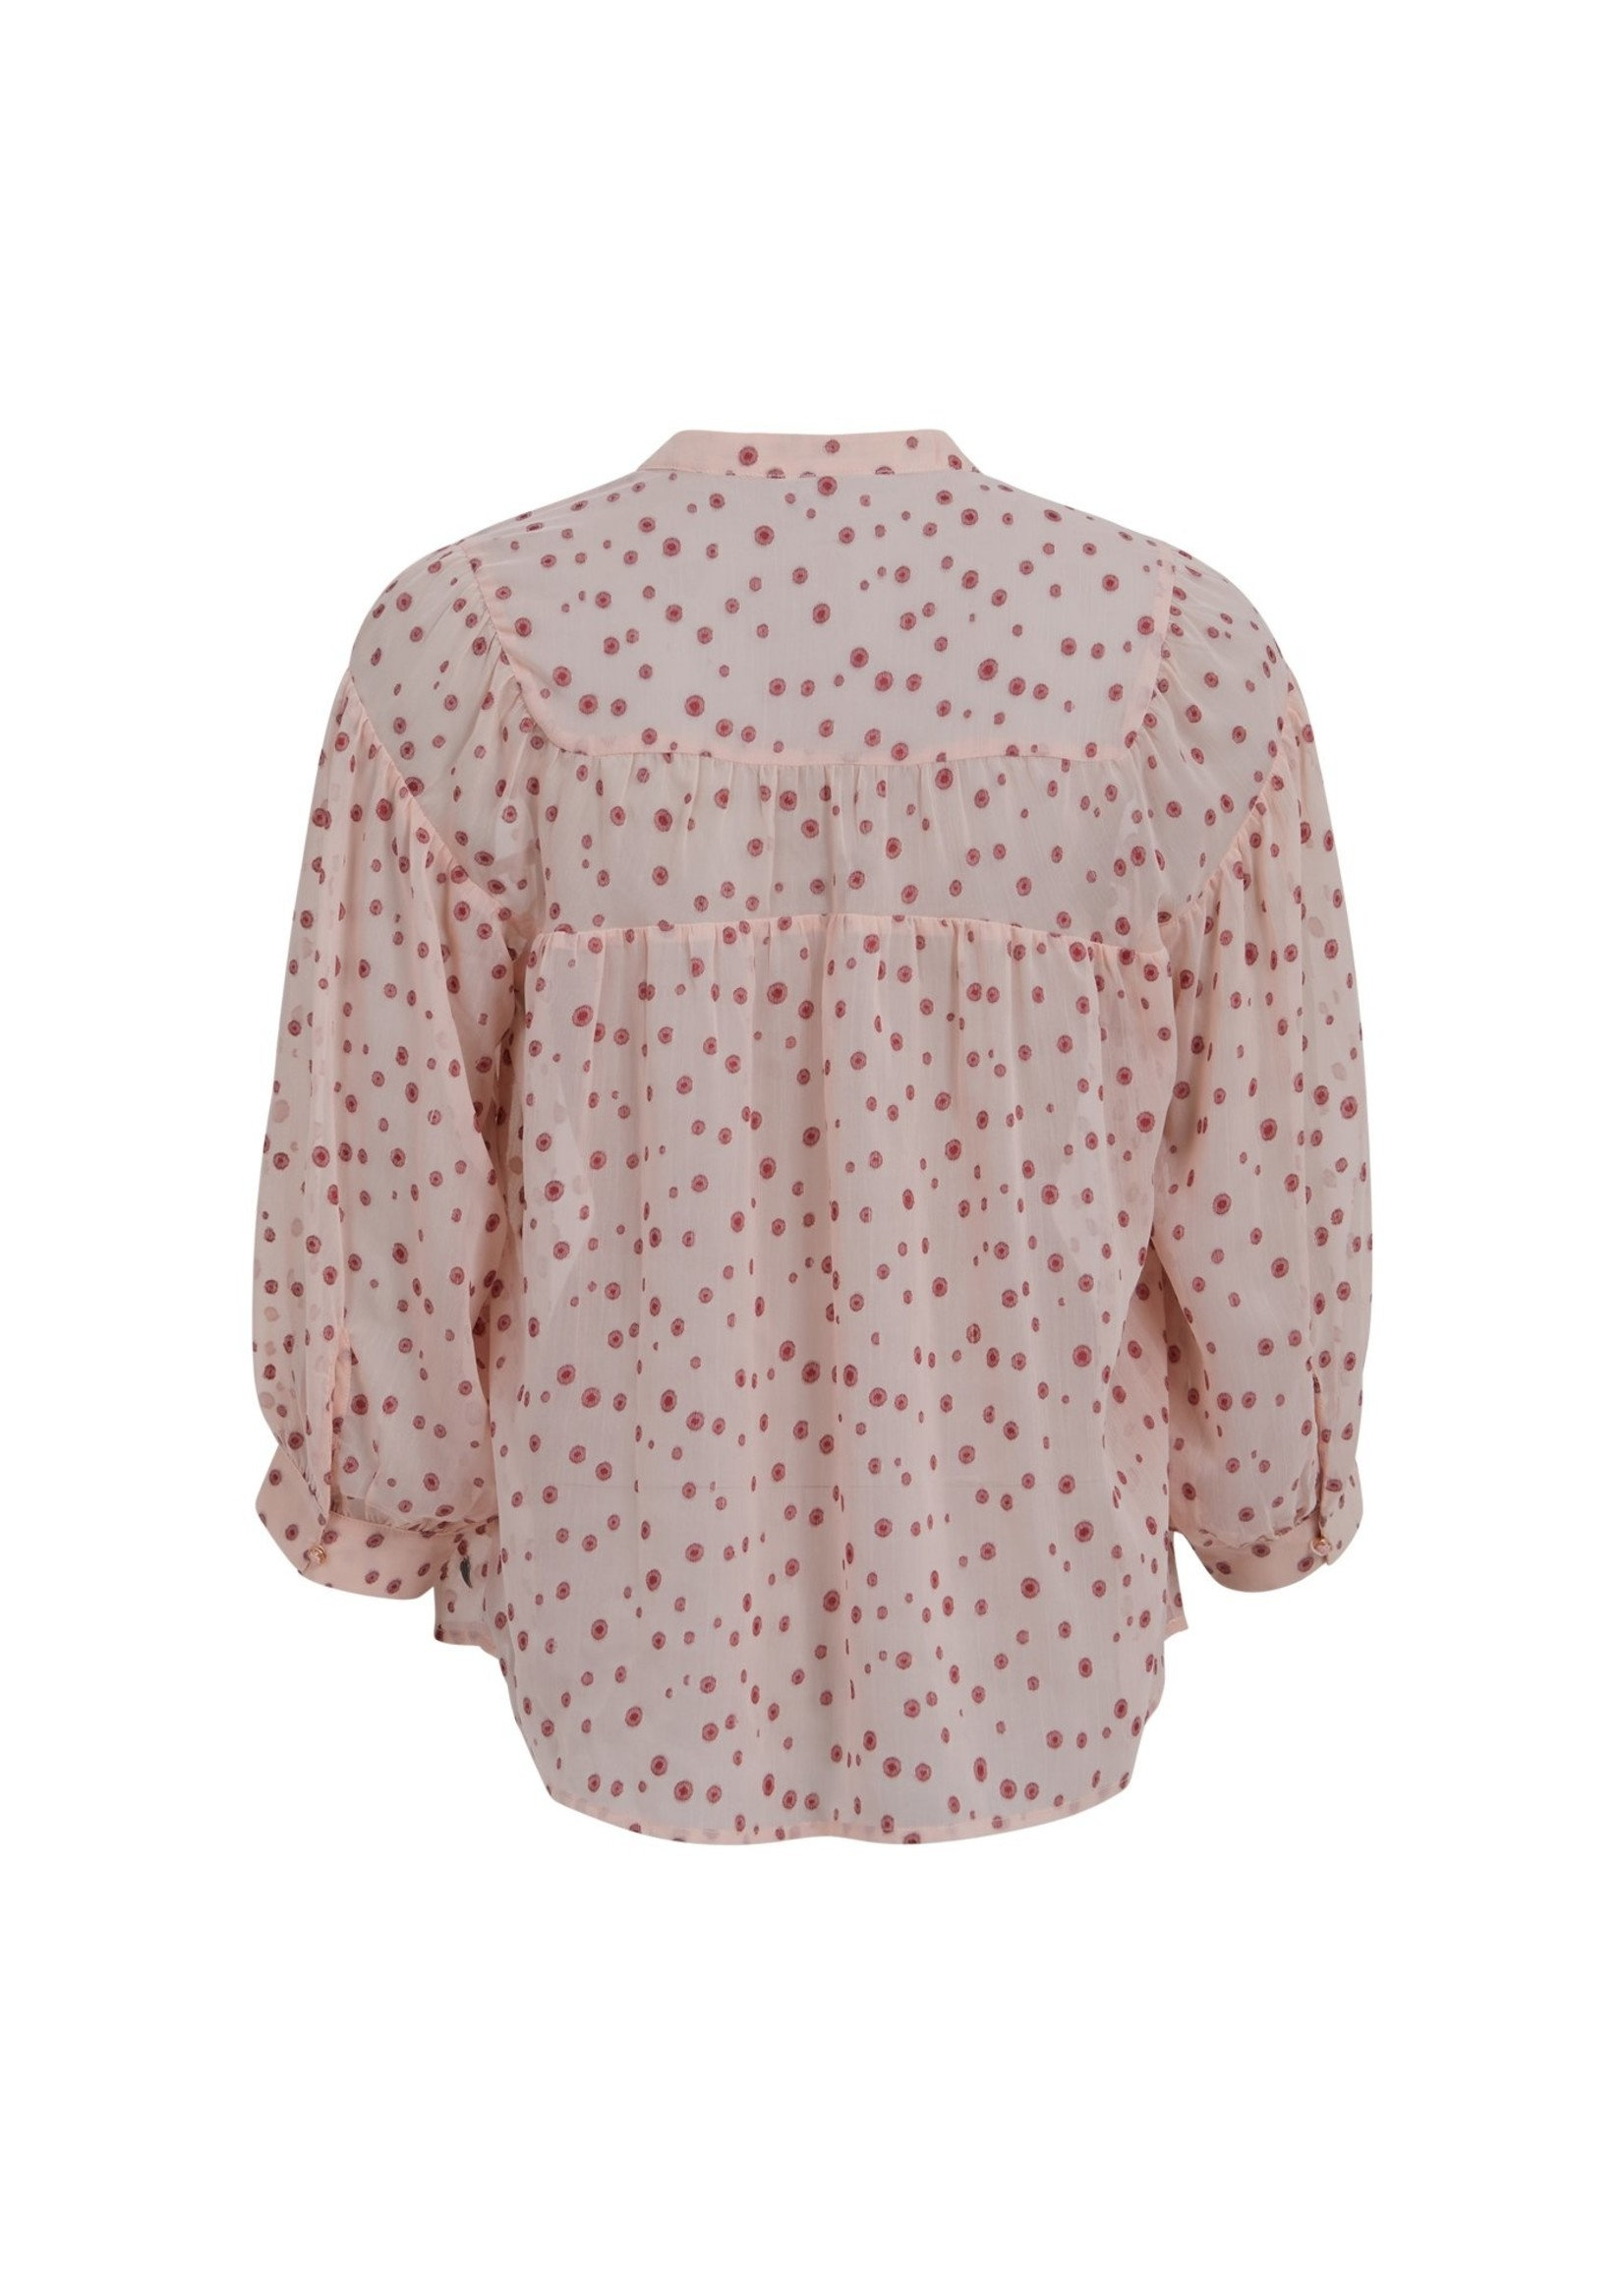 Coster Copenhagen LOOSE SHIRT WITH GATHERINGS